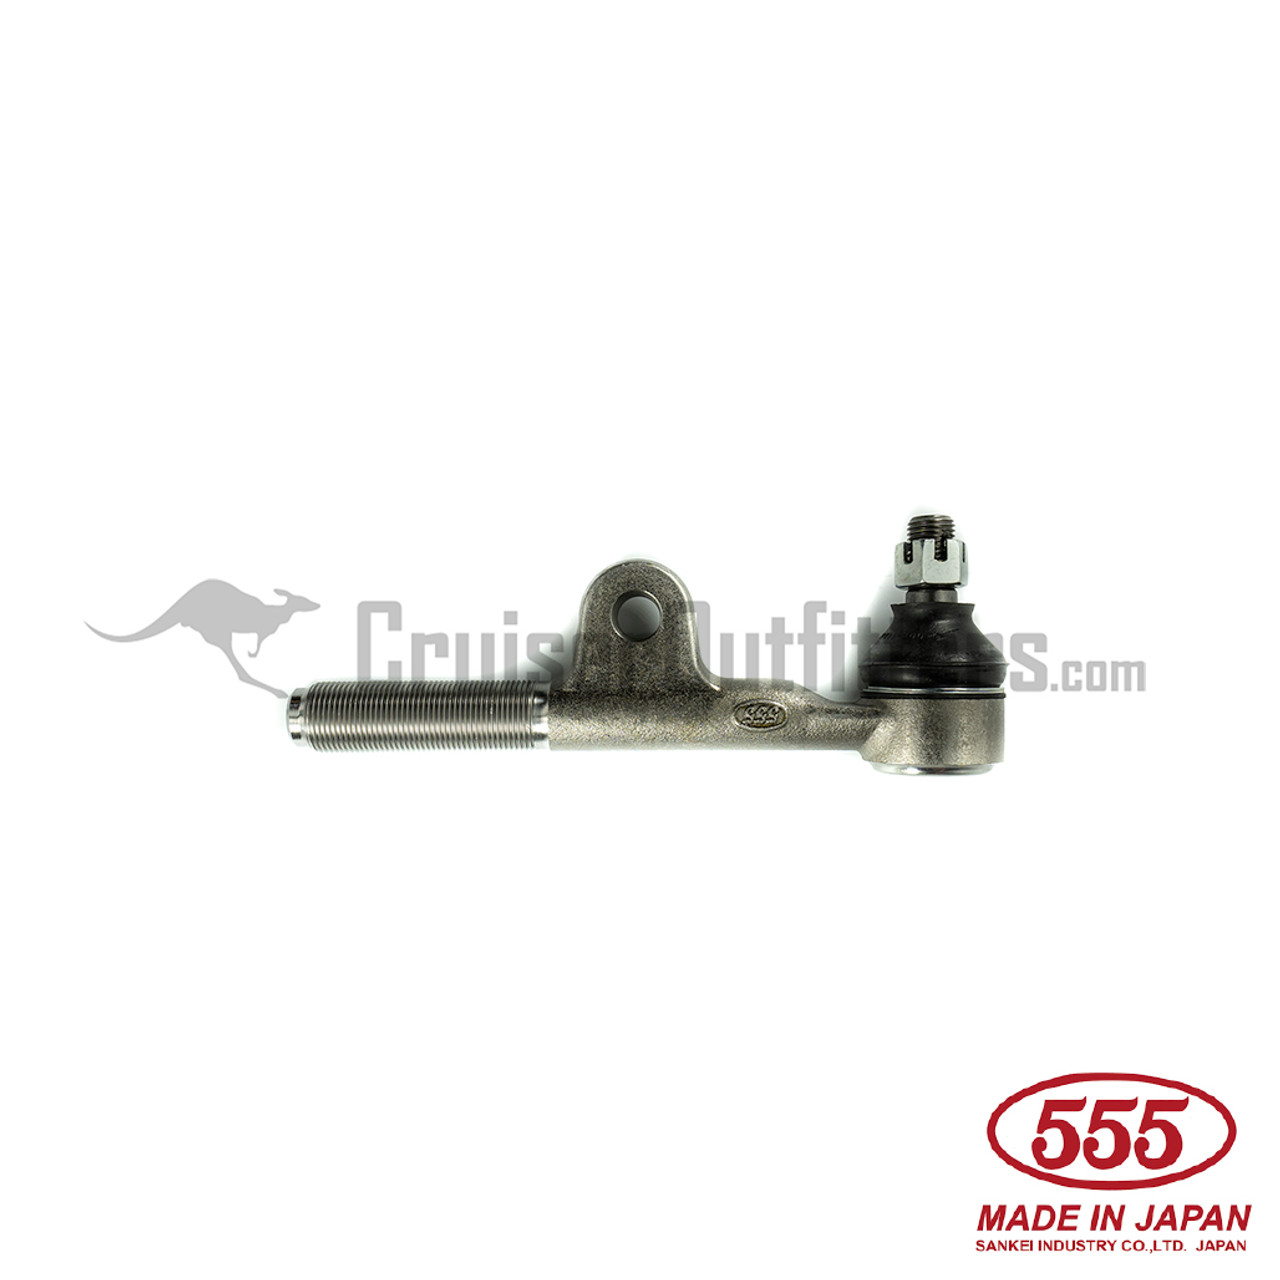 TRE69095 - Tie Rod End Kit - Fits 90'-97' 80 Series LHD